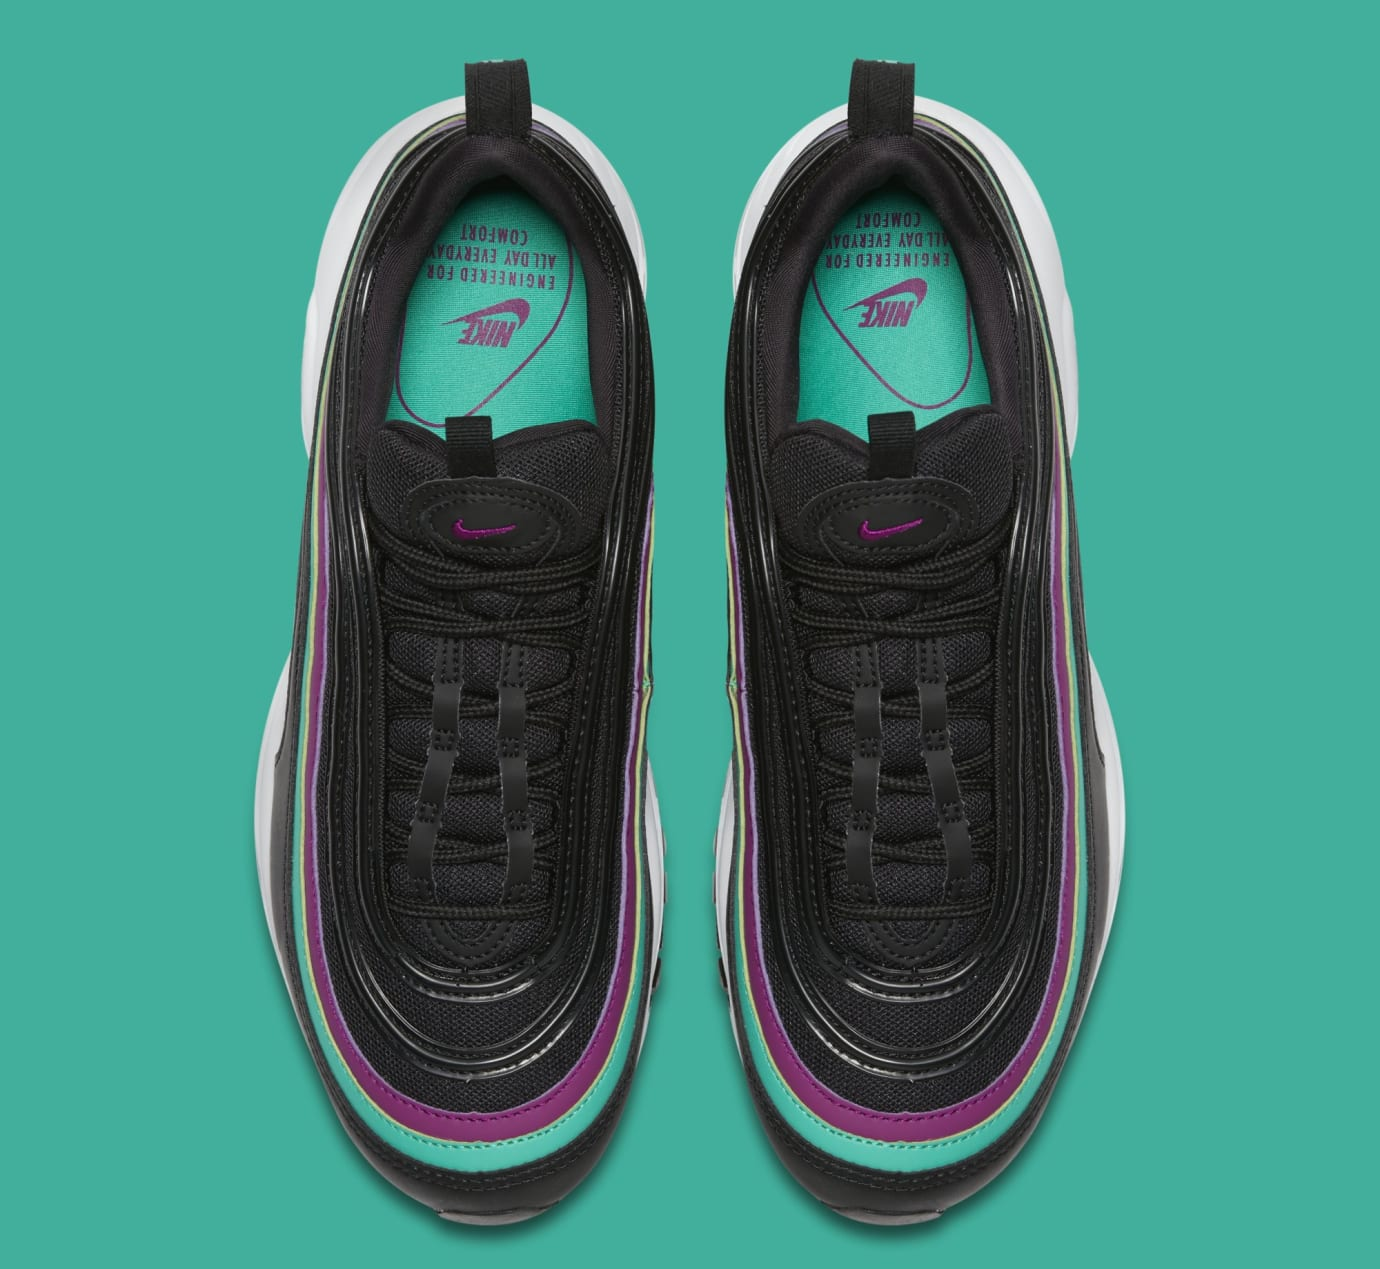 Nike Air Max 97 WMNS 'Black/Bright Grape/Clear Emerald' 921733-008 (Top)